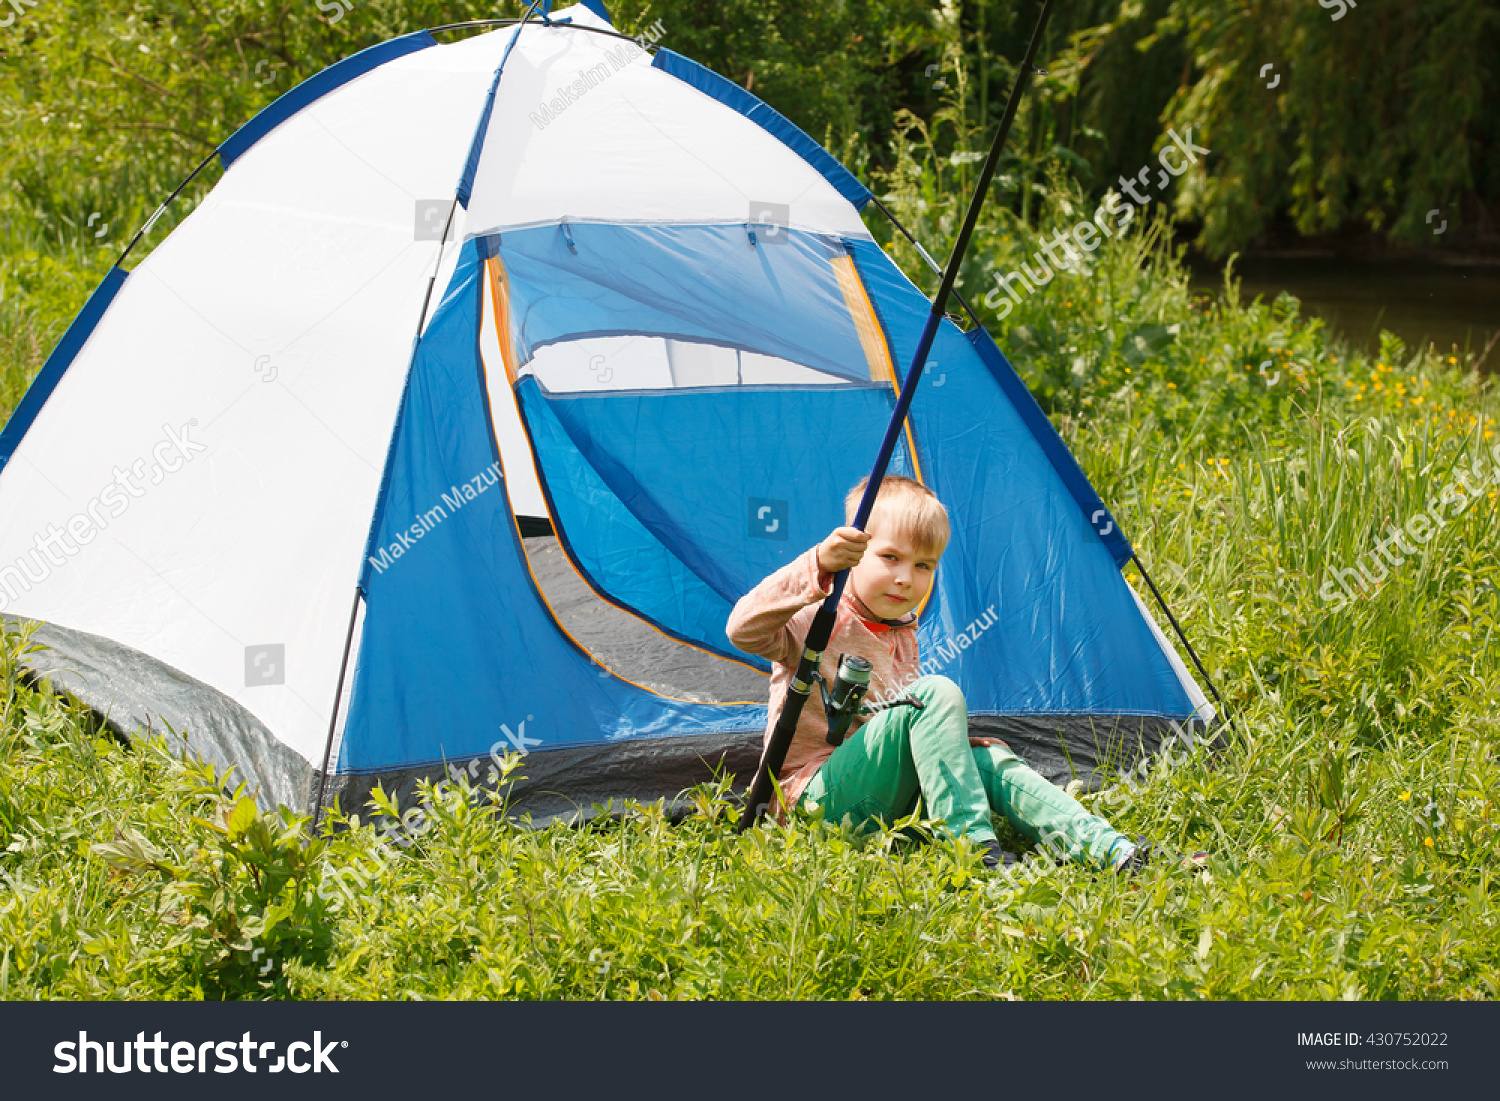 C& in the tent -boy on the c&ing  sc 1 st  Shutterstock & Camp Tent Boy On Camping Stock Photo 430752022 - Shutterstock